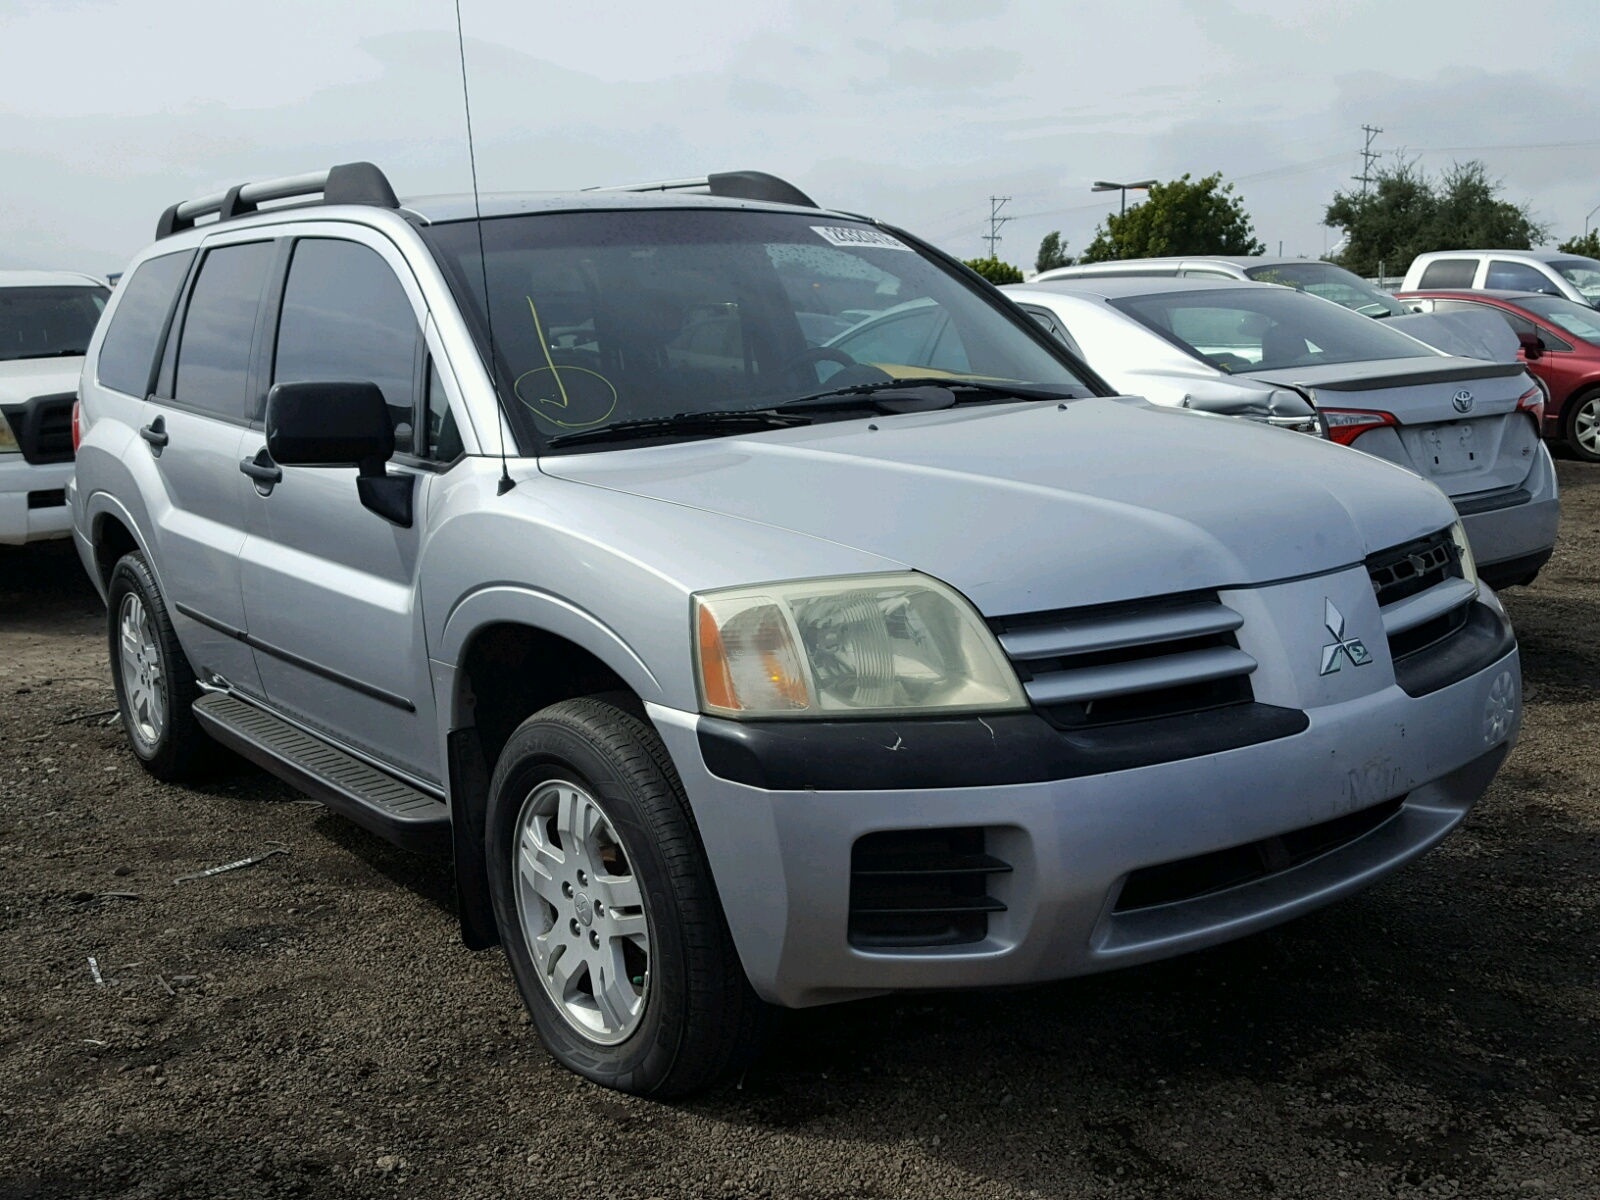 endeavor sale edmonton for mitsubishi alberta in used inventory